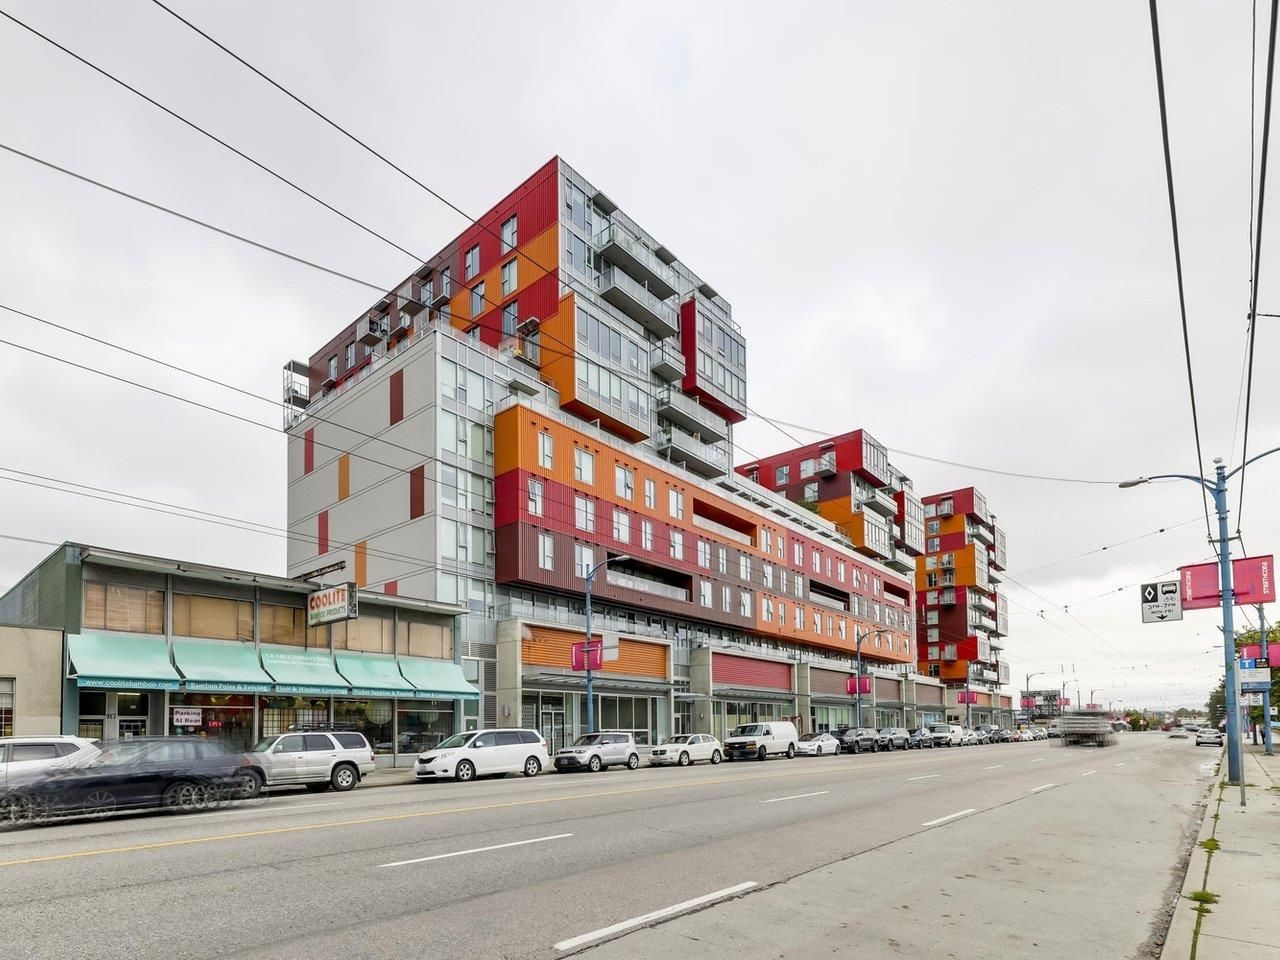 """Main Photo: 712 933 E HASTINGS Street in Vancouver: Strathcona Condo for sale in """"STRATHCONA VILLAGE"""" (Vancouver East)  : MLS®# R2623983"""